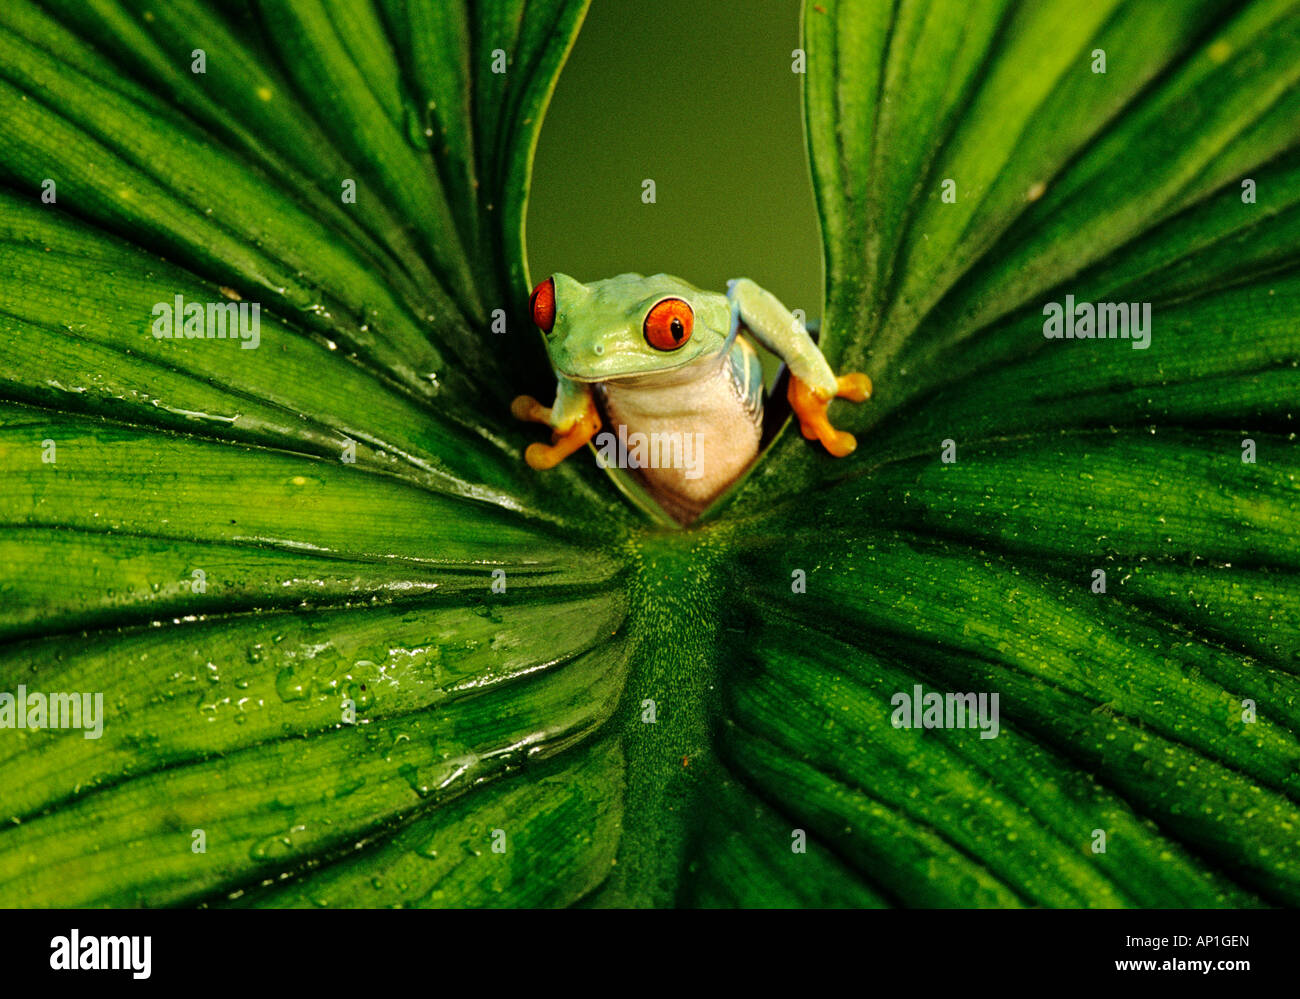 Red eyed Tree Frog par captif des feuilles Photo Stock